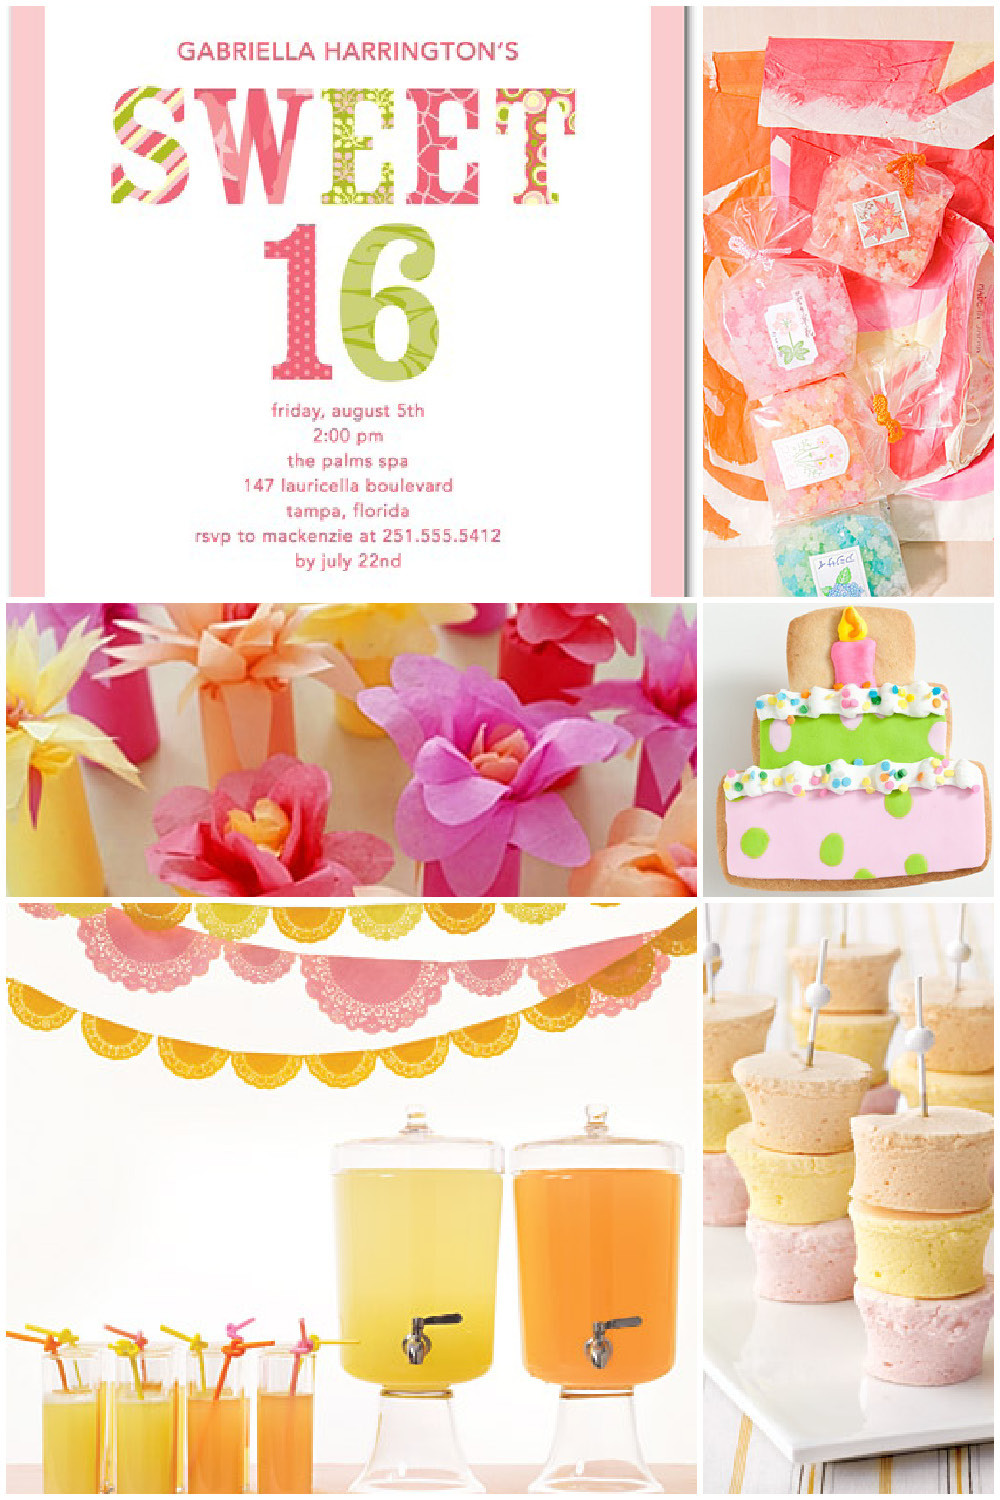 Best ideas about Sweet 16 Birthday Party . Save or Pin Sweet 16 Birthday Party Inspiration Now.